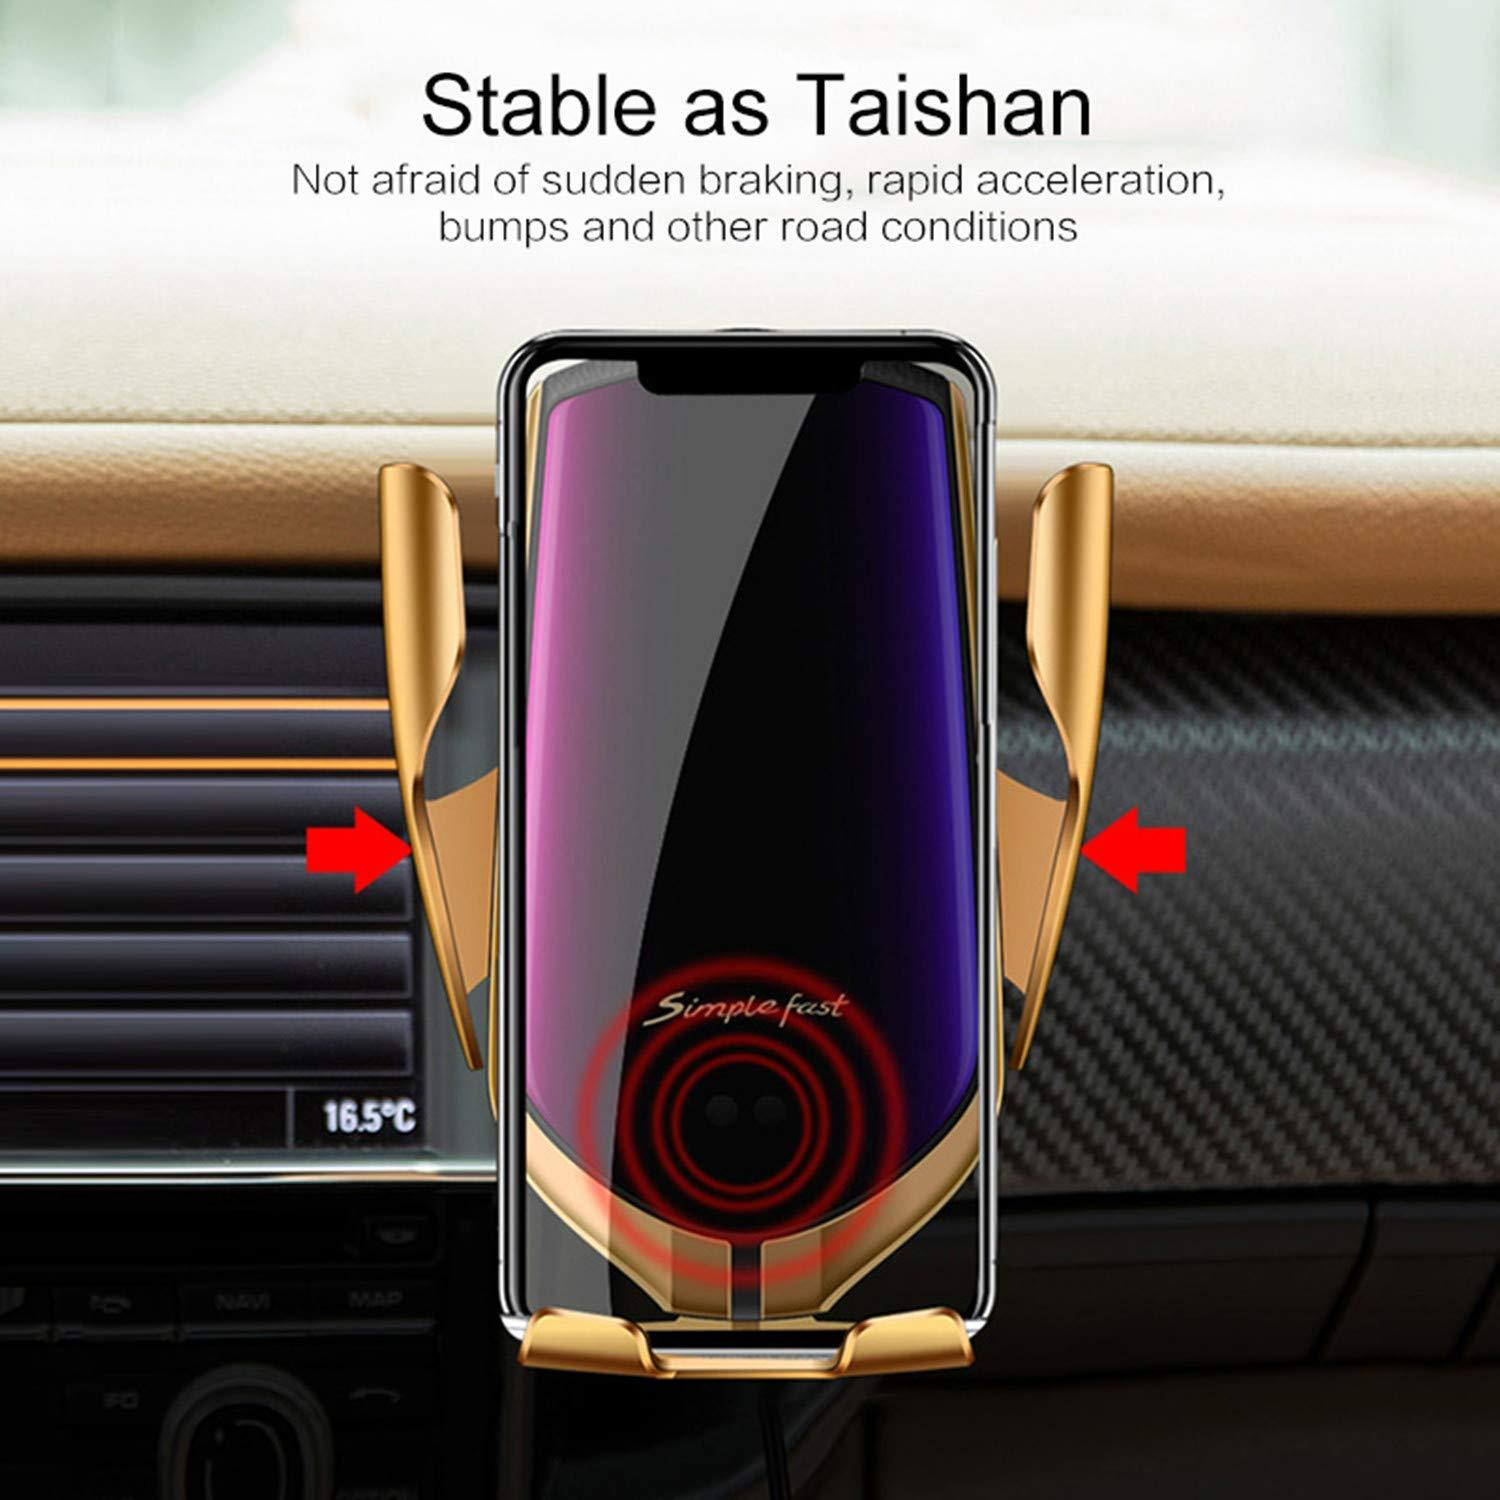 Wireless Automatic Sensor Car Phone Holder and Charger - Buy 2 Free Shipping